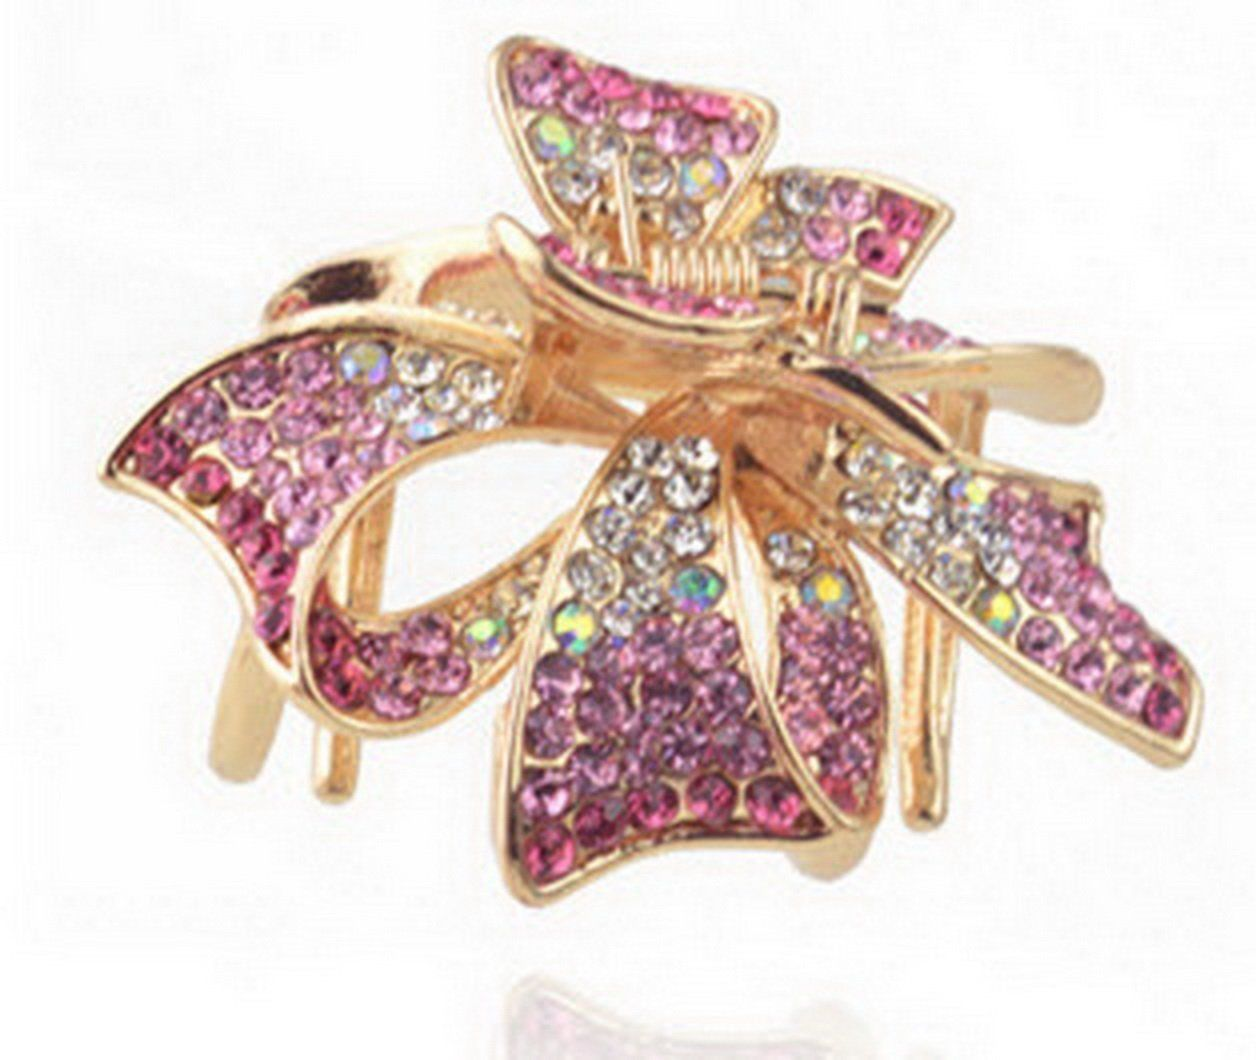 QUALITY Rhinestone Crystal ACRYLIC HAIR CLAW Hairpin Clip French Magenta Pink